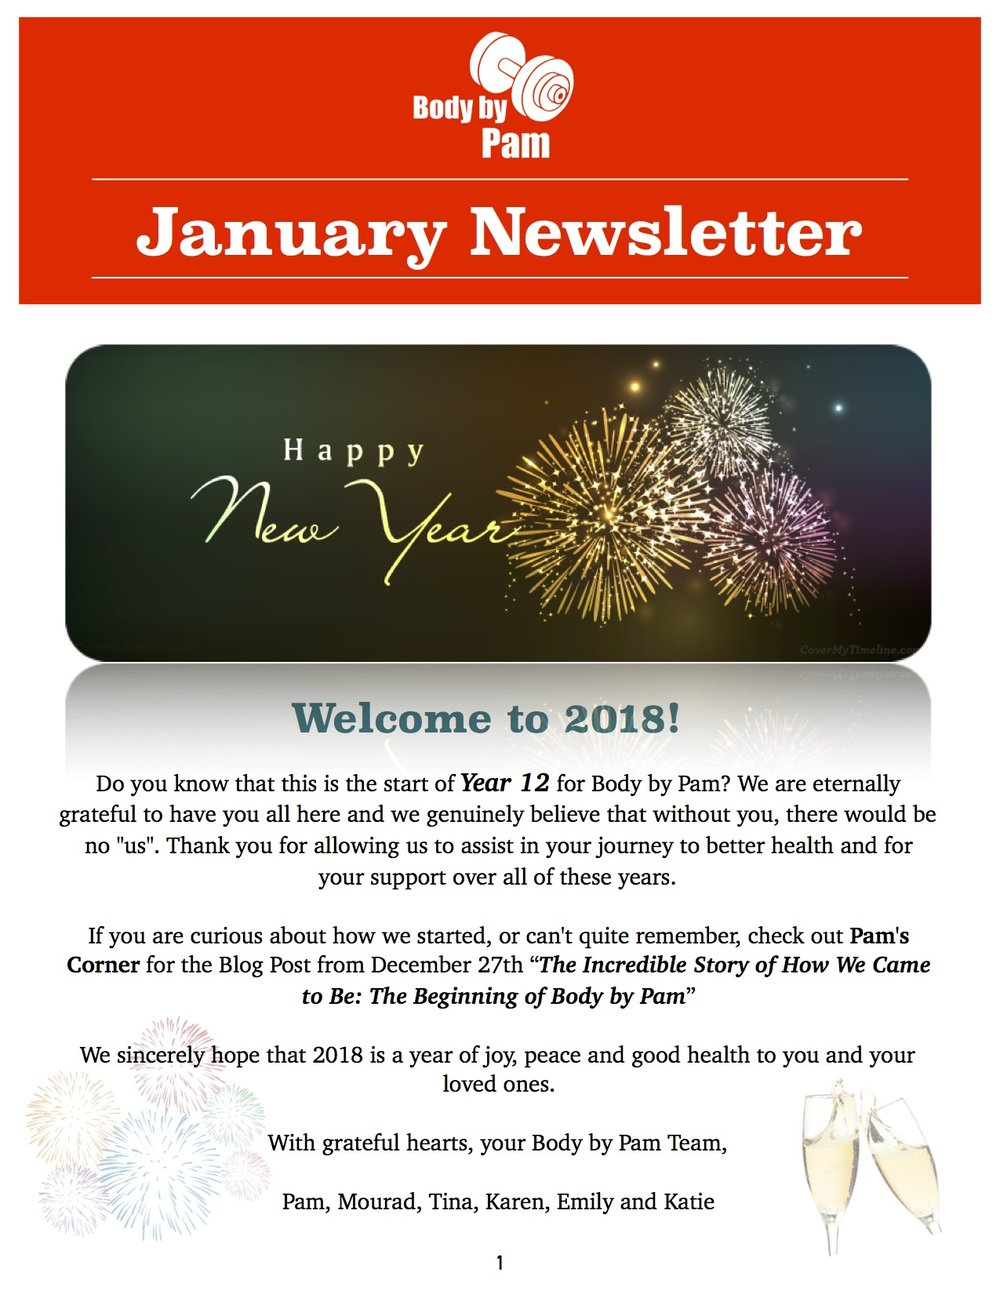 January Newsletter 1.jpg